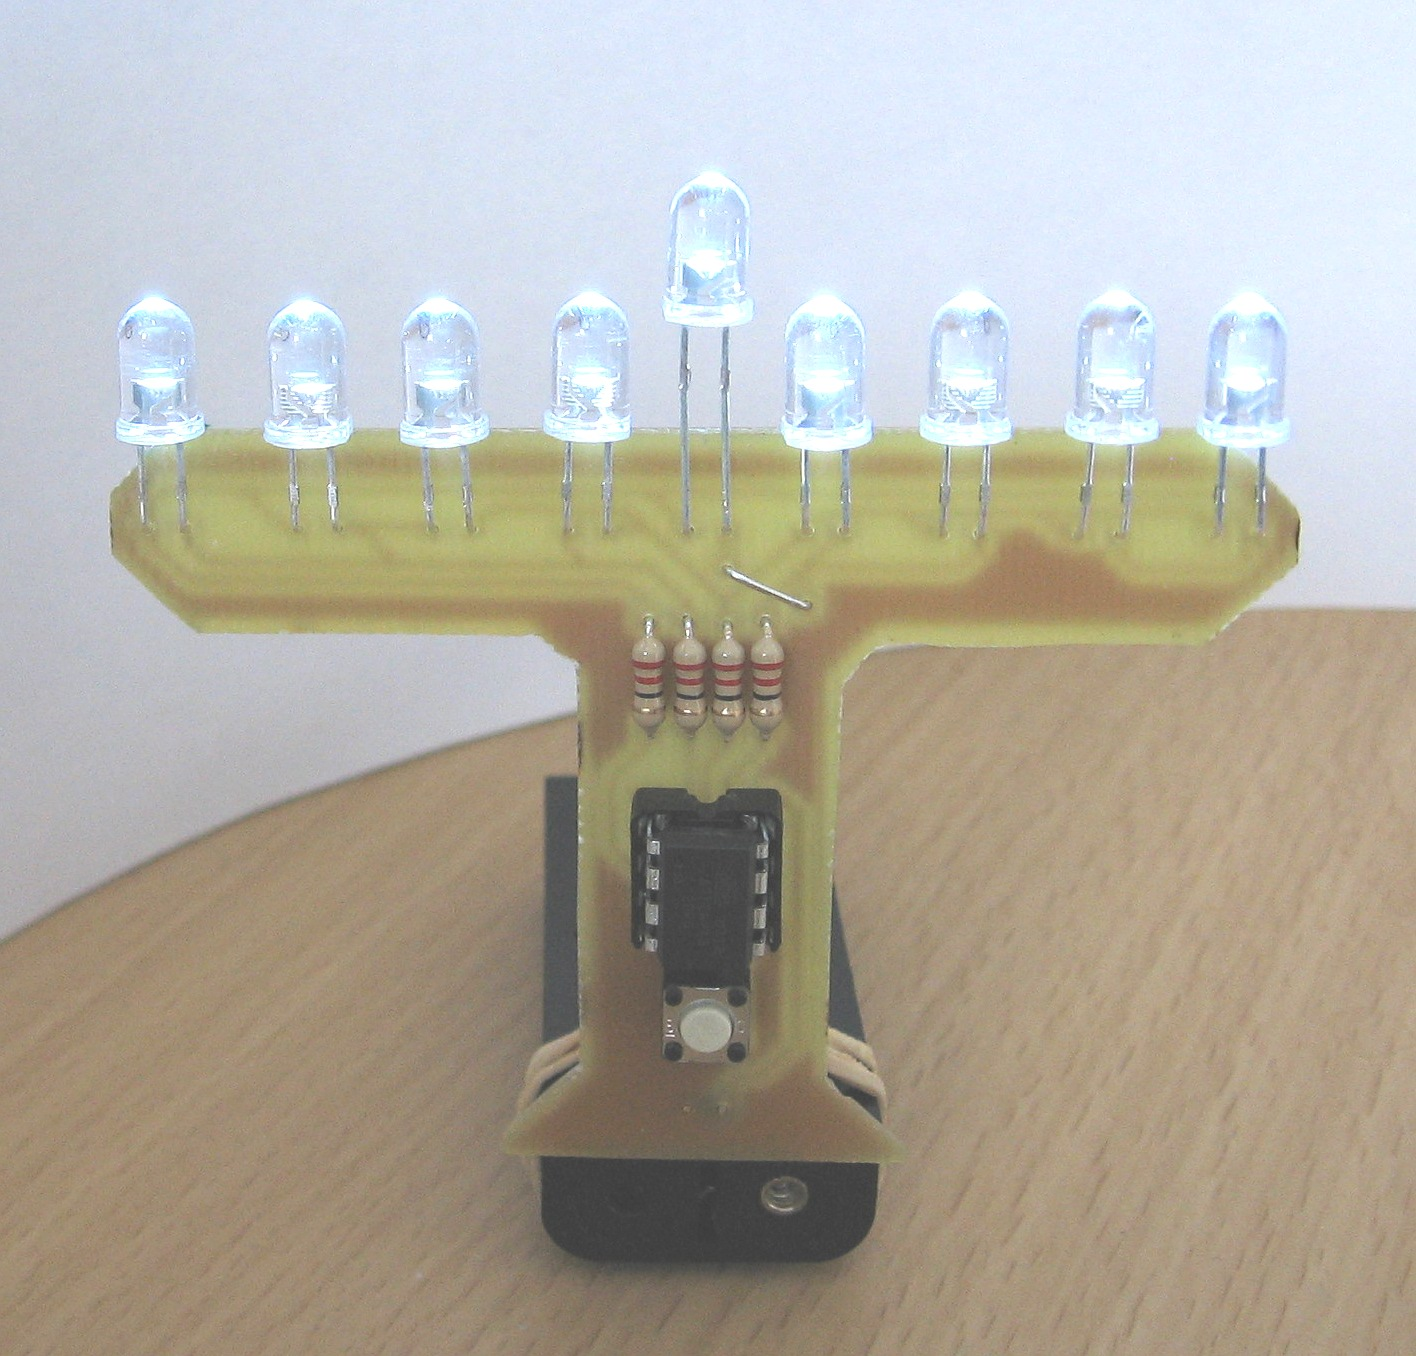 LED Menorah using ATtiny13 microcontroller